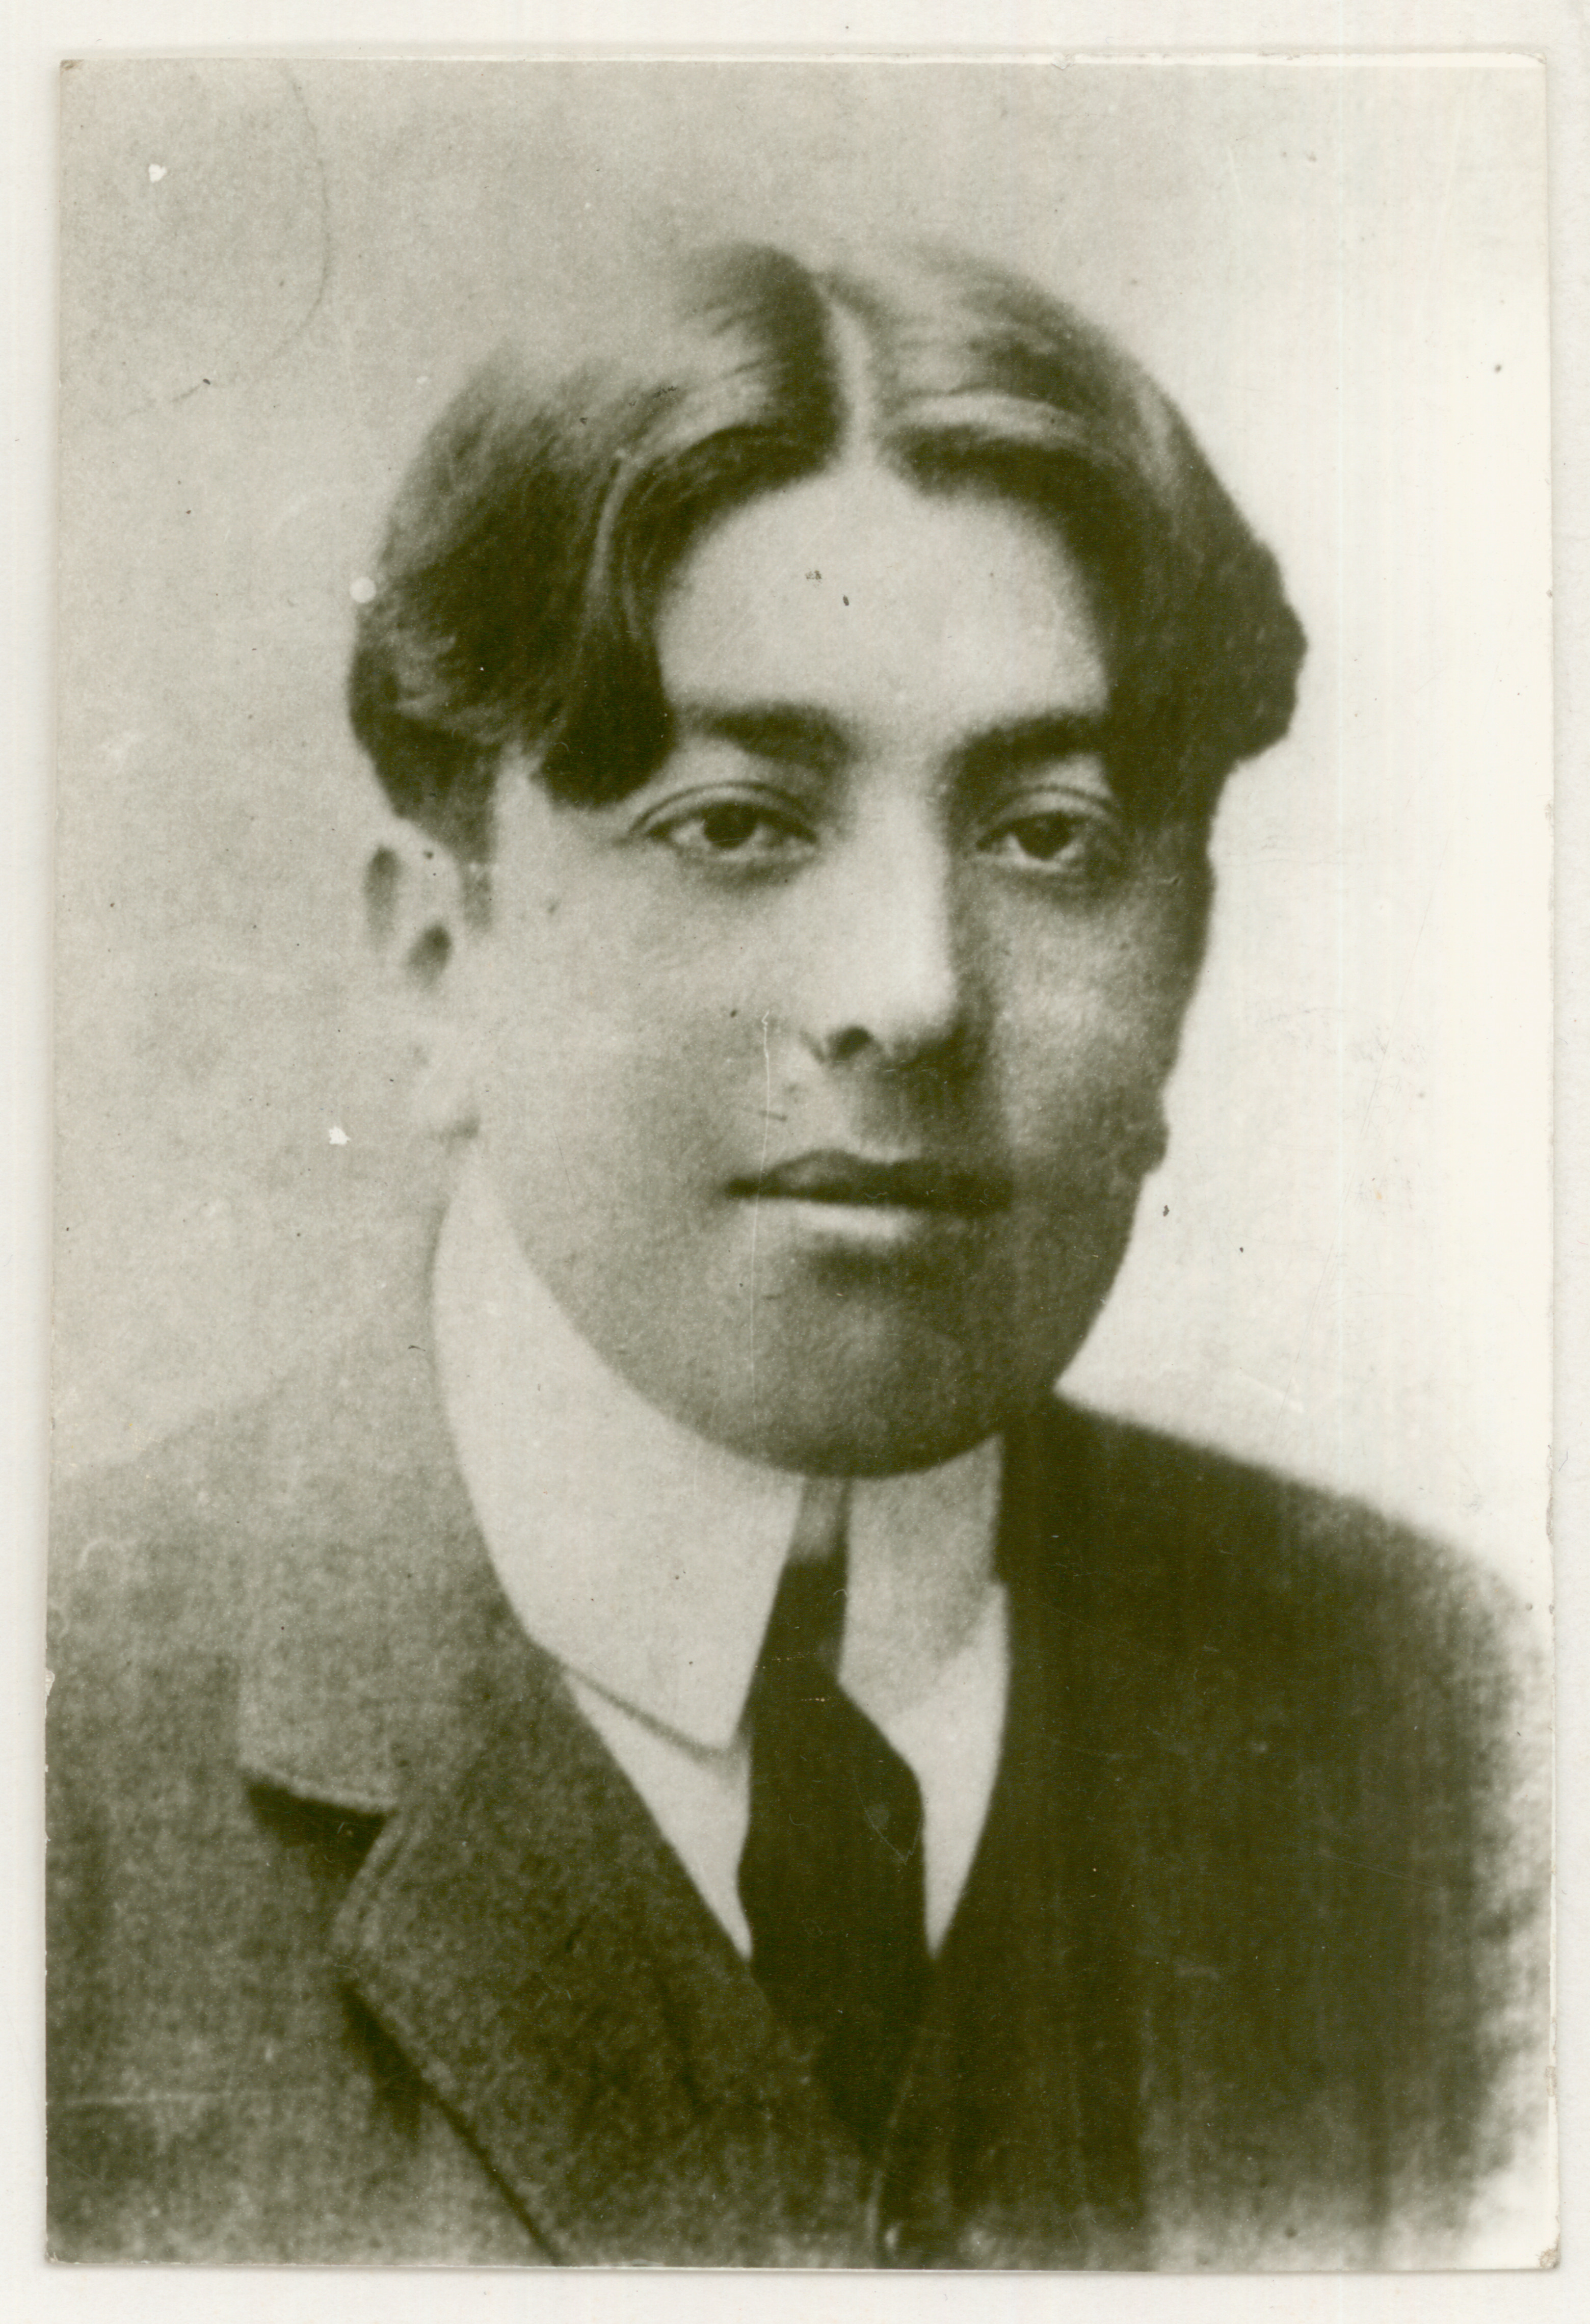 Photograph from the Collection Aníbal Barrios Pintos, [[National Library of Uruguay]].